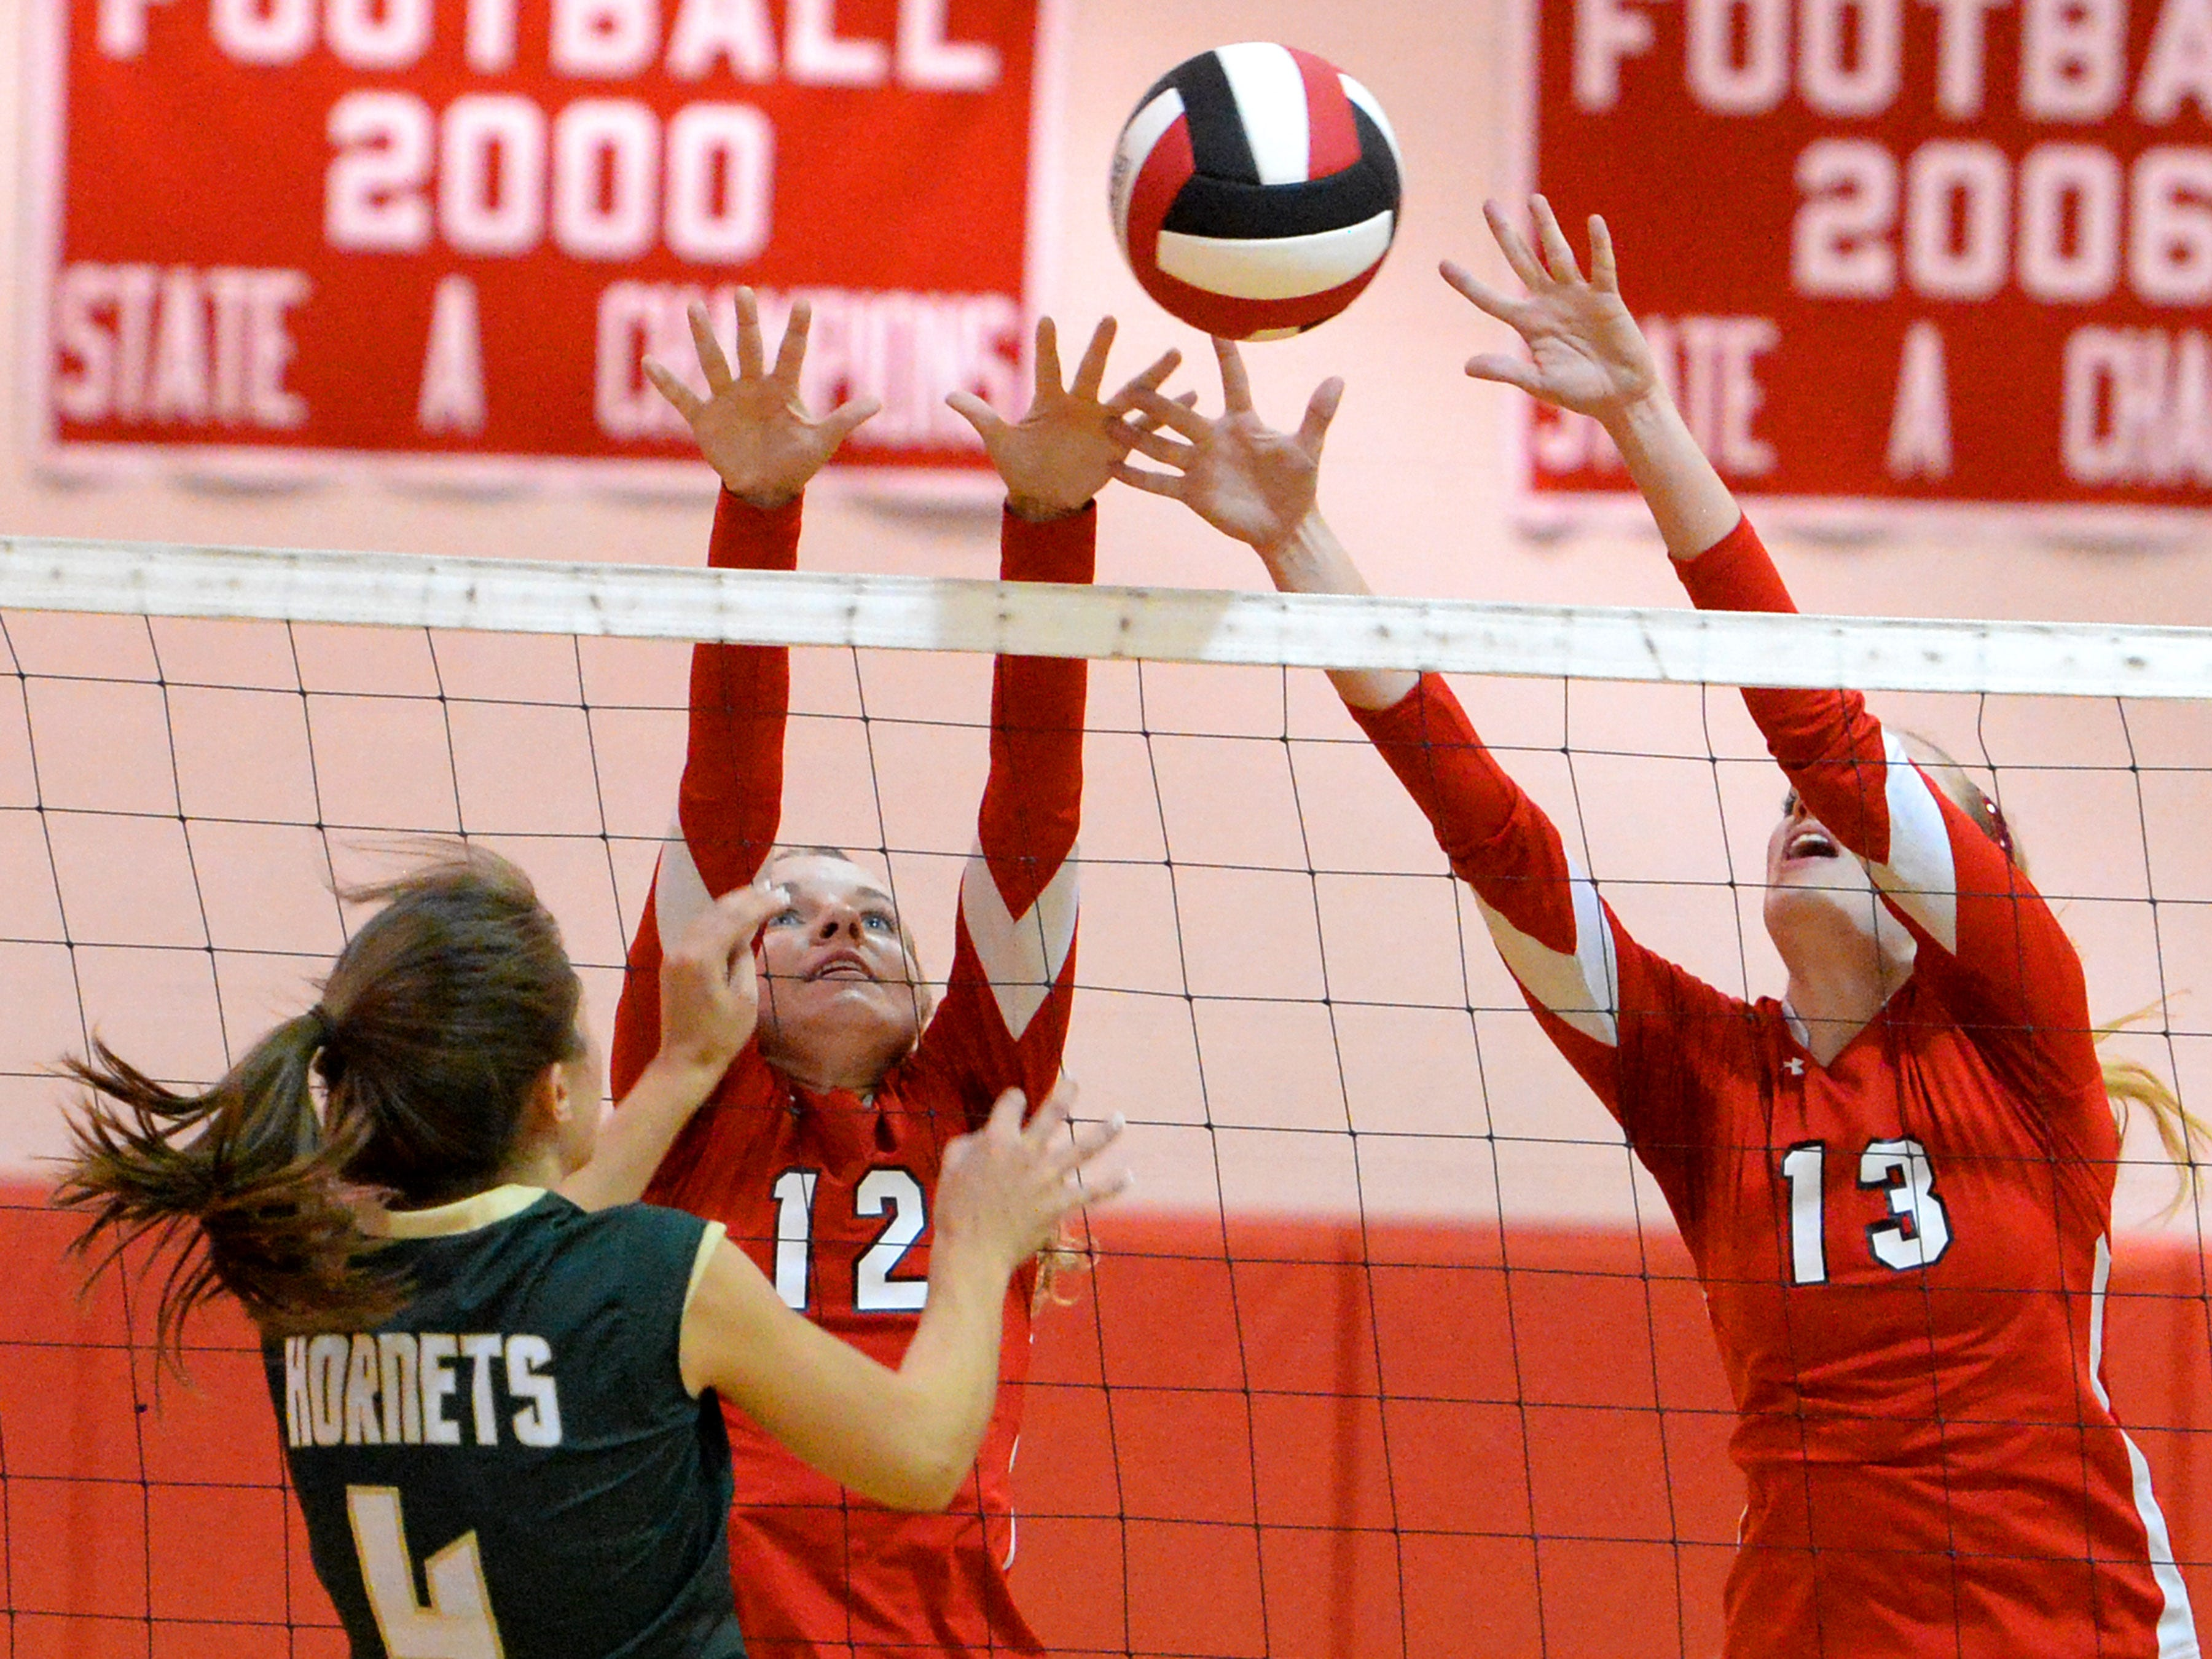 Riverheads' Mekayla Heizer, left, and Mariah Clark attempt to block a return by Wilson Memorial's Alison Eskridge during their Conference 36 championship match in Greenville on Thursday. The Gladiators swept the Green Hornets for the title.